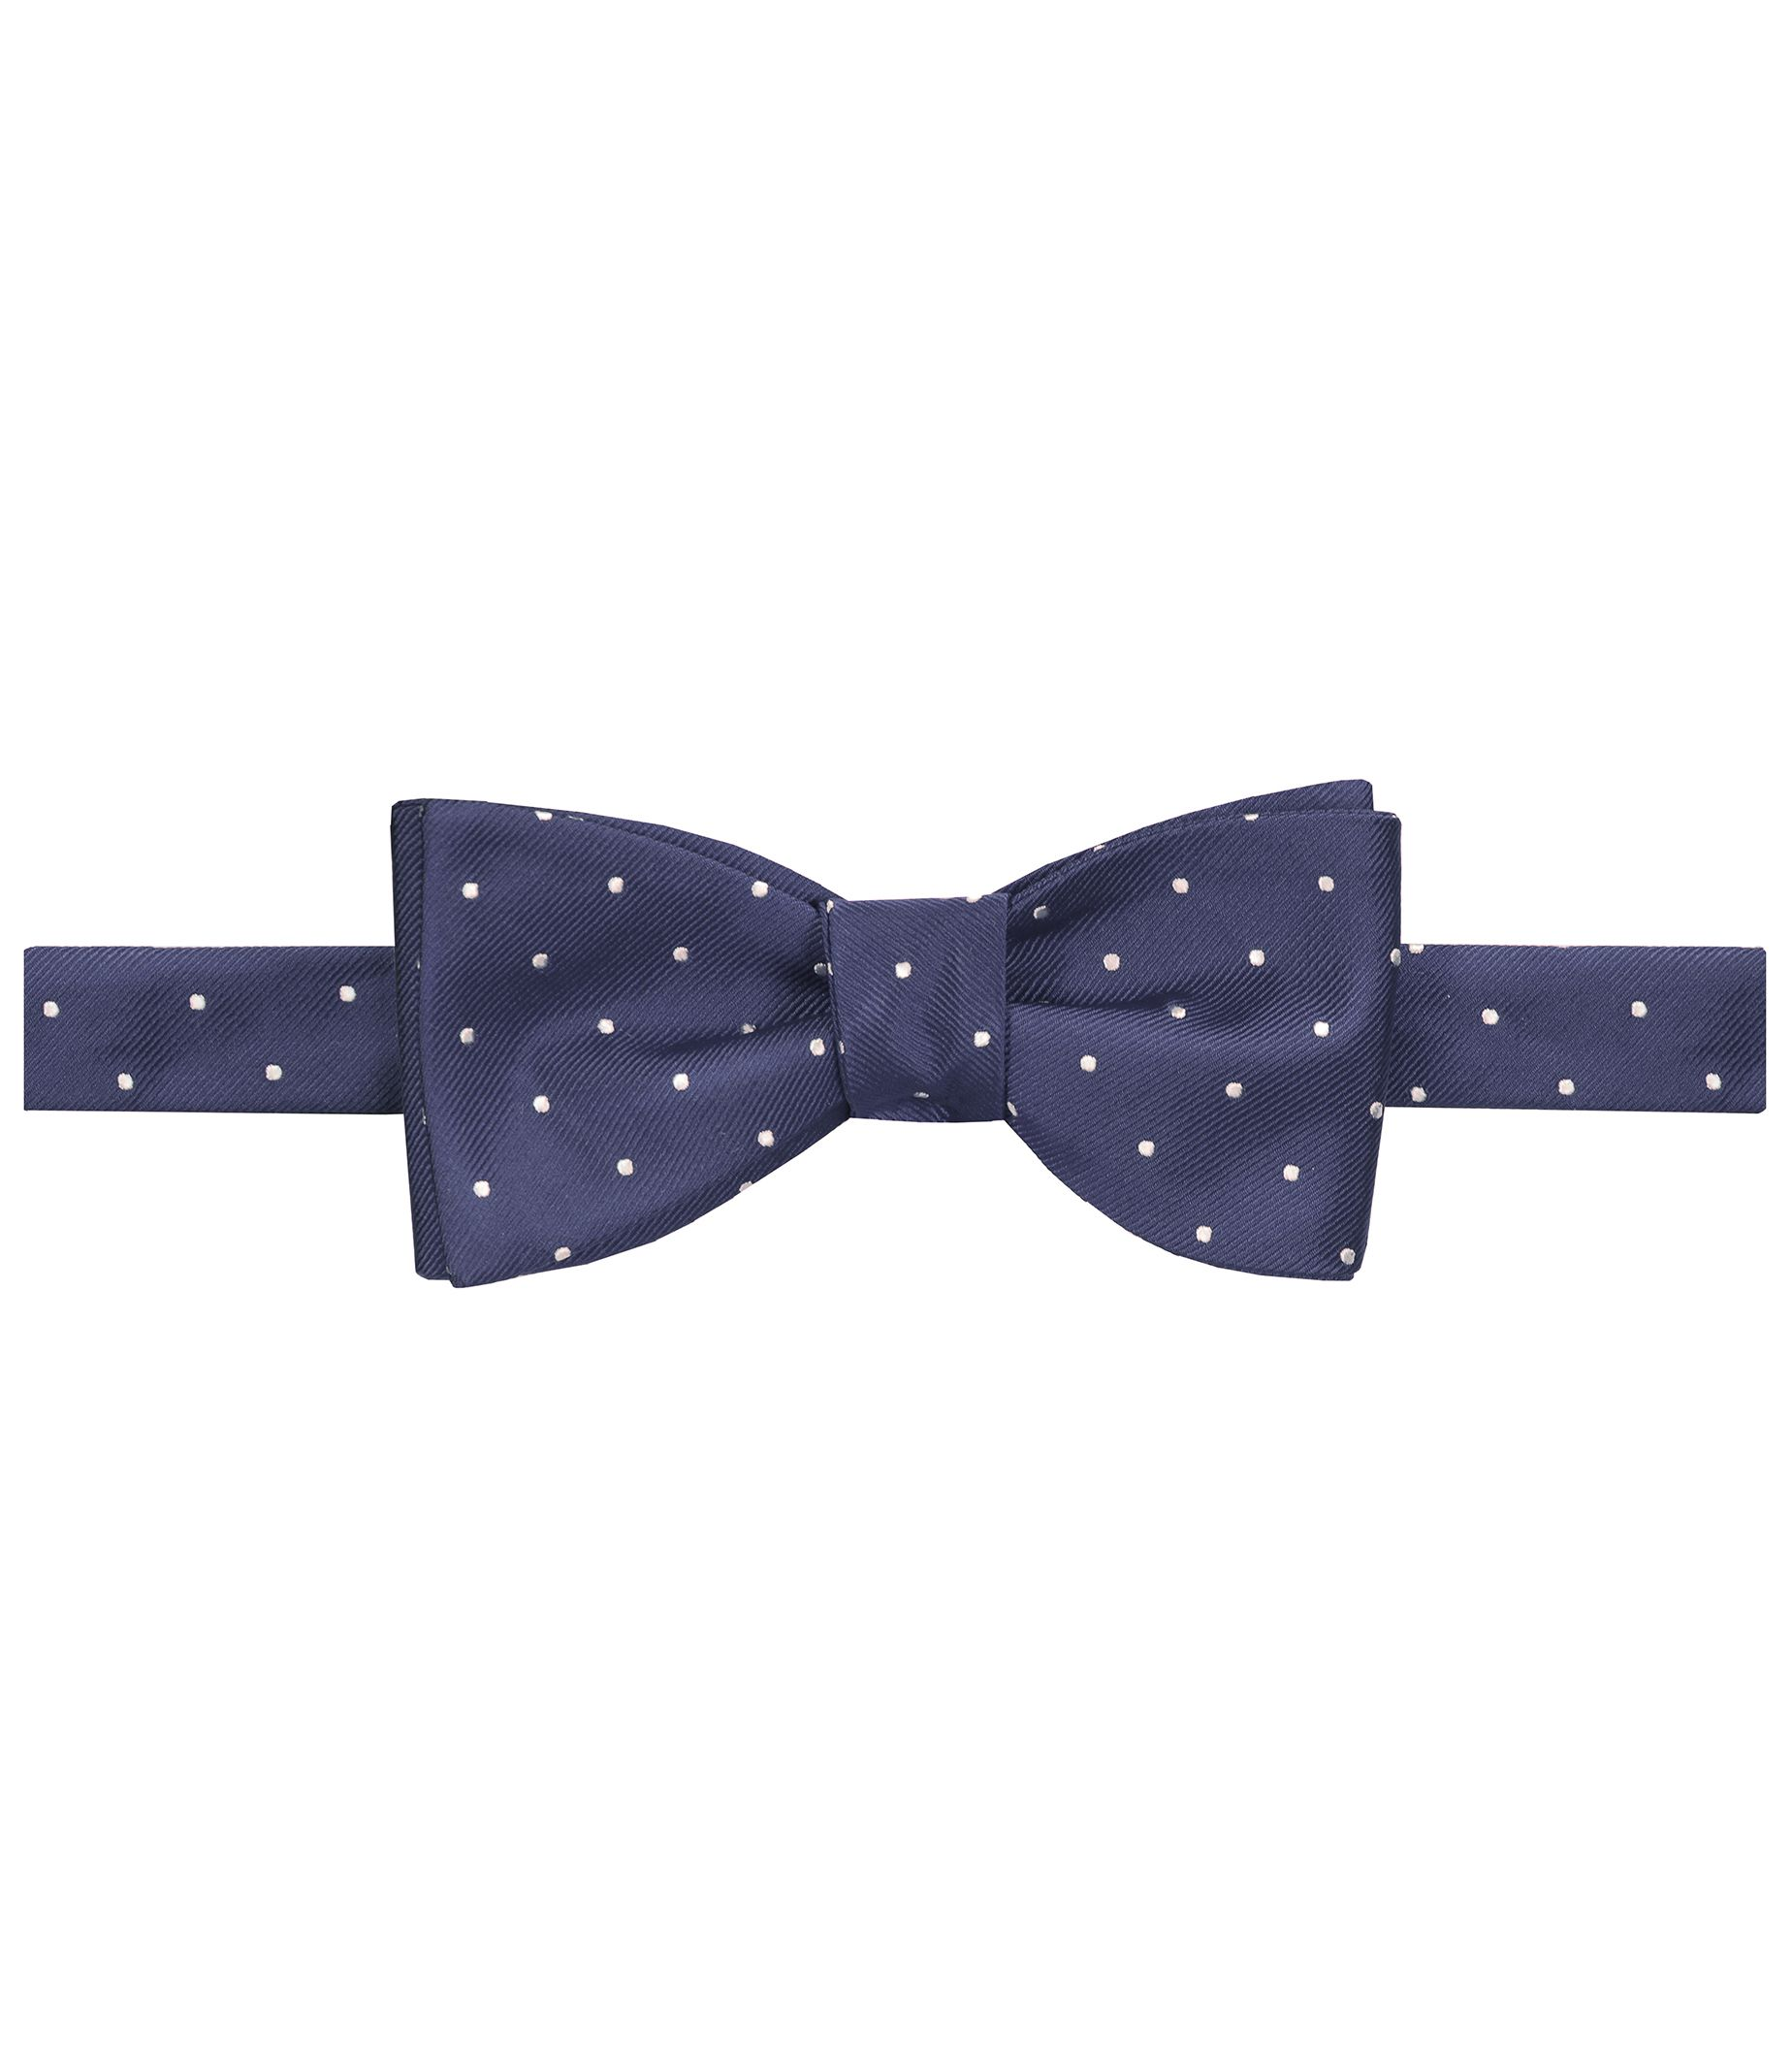 Men's Clothing, Ties and Shoes on Sale at Macy's come in a variety of styles. Shop Macy's Sale & Clearance for men's clothing, Ties & shoes today! Macy's Presents: Tommy Hilfiger Men's Botanical Pre-Tied Bow Tie.